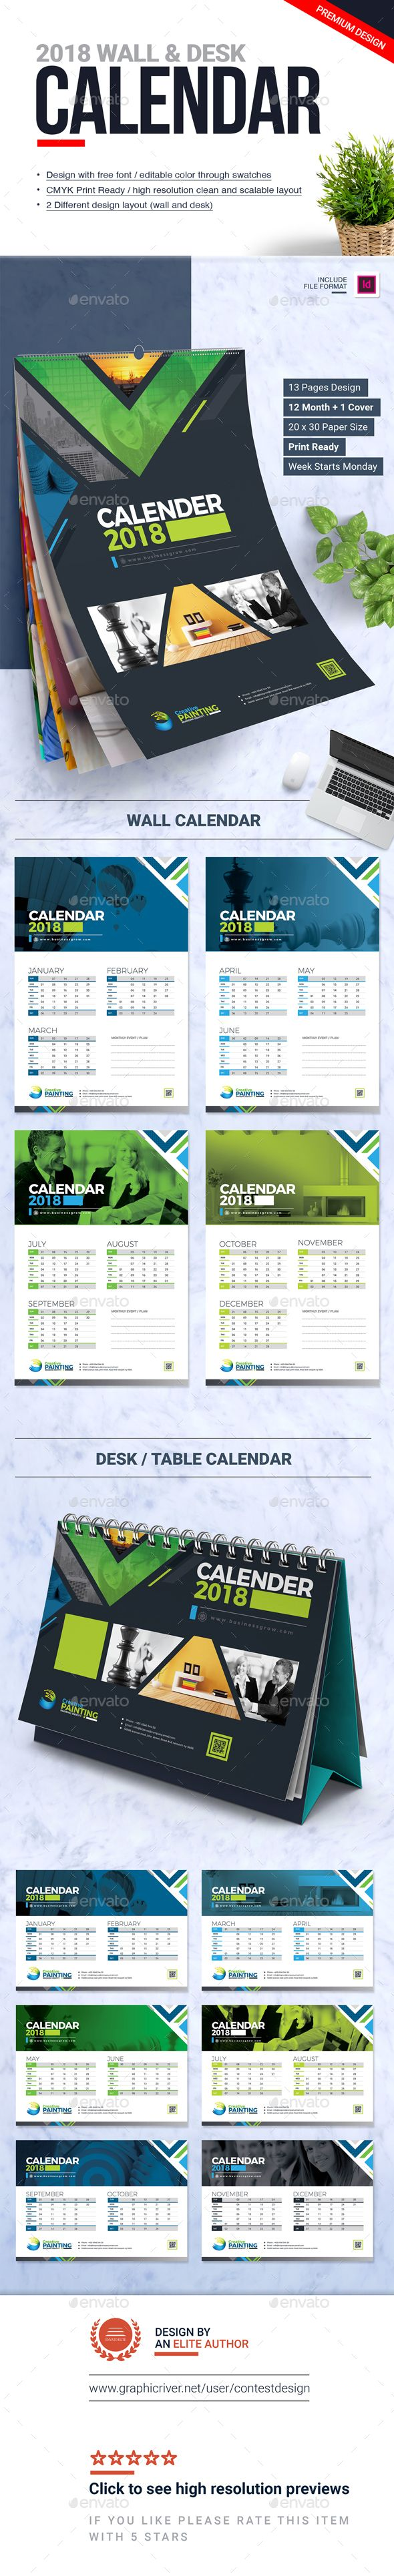 2018 calendar design template indesign indd wall and desk table calendar 2018 calendar. Black Bedroom Furniture Sets. Home Design Ideas